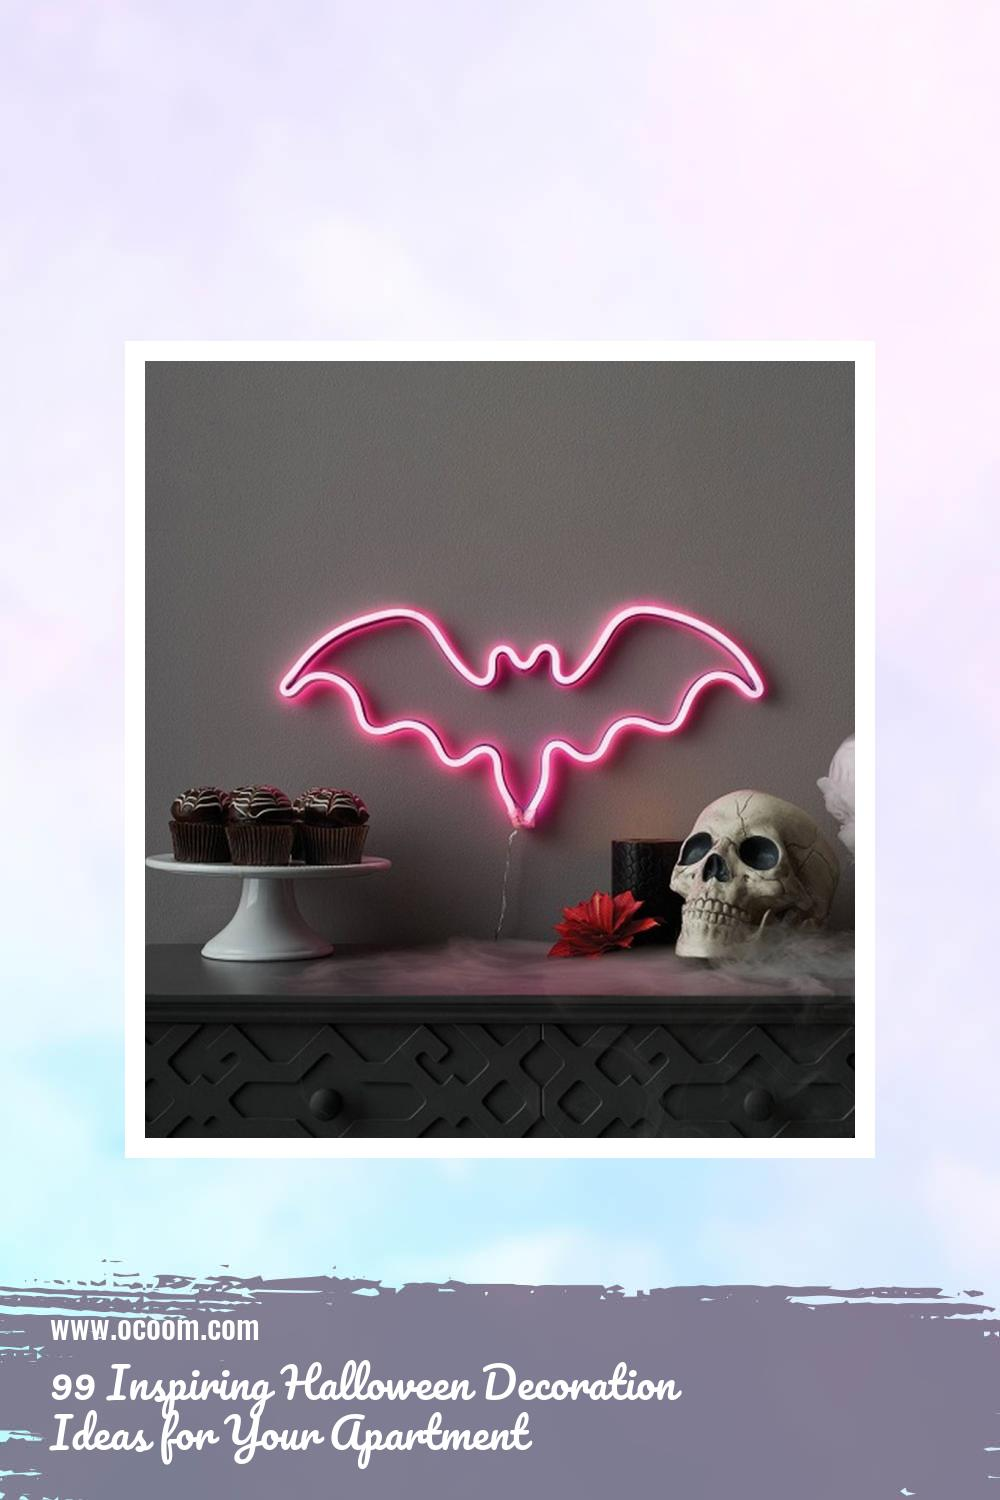 99 Inspiring Halloween Decoration Ideas for Your Apartment 49